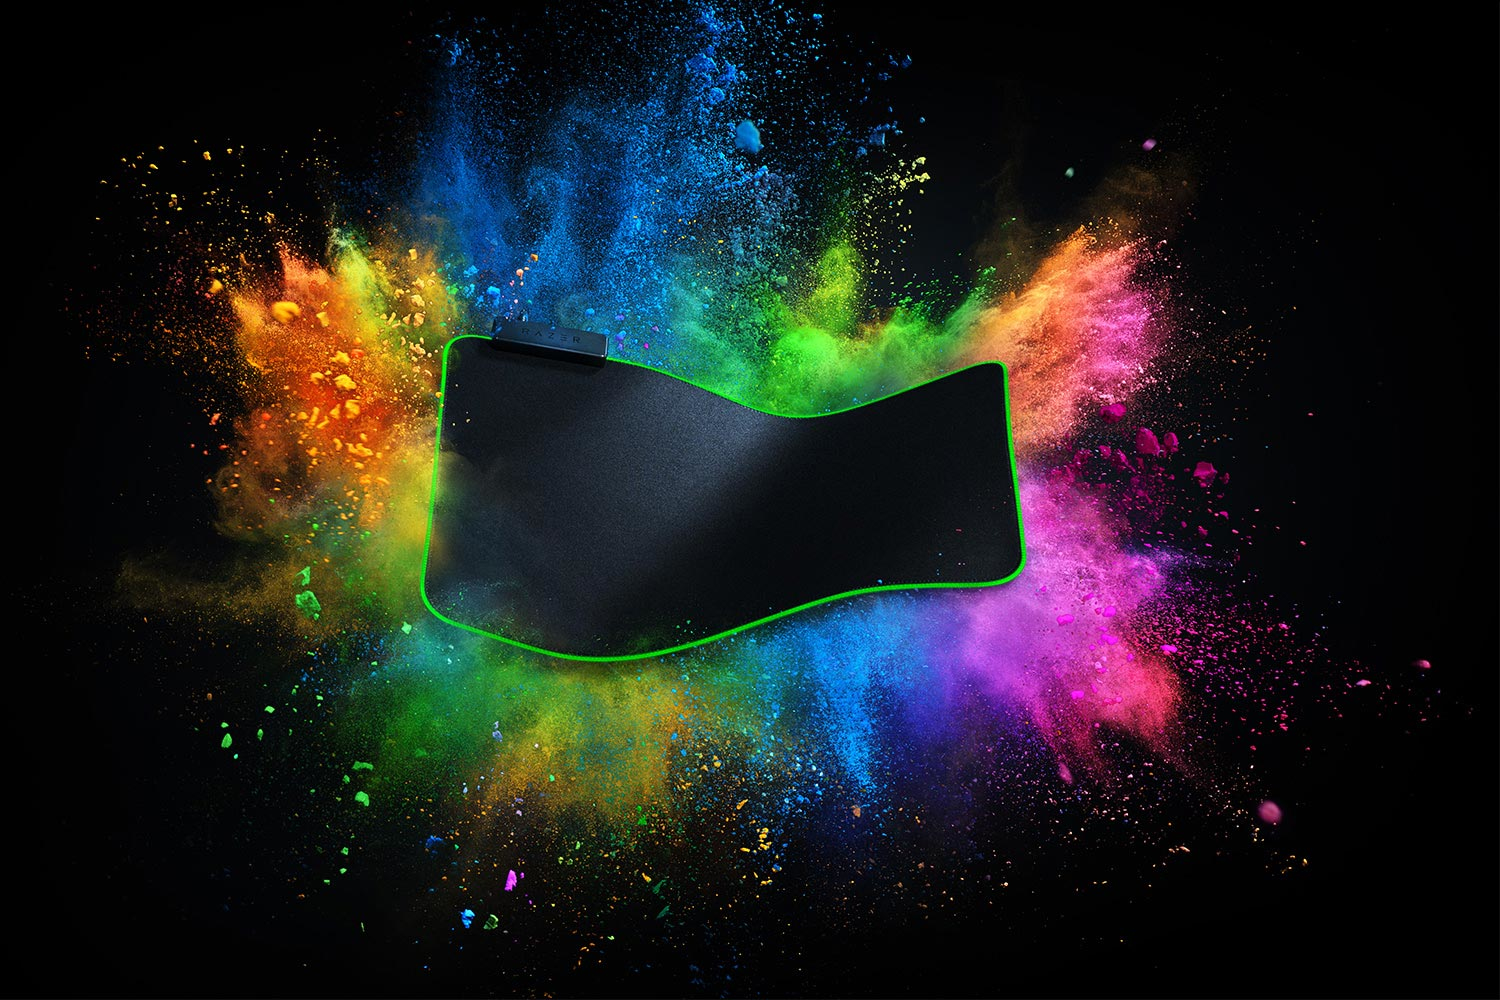 Razer Golithus Chroma Black Gaming mouse pad